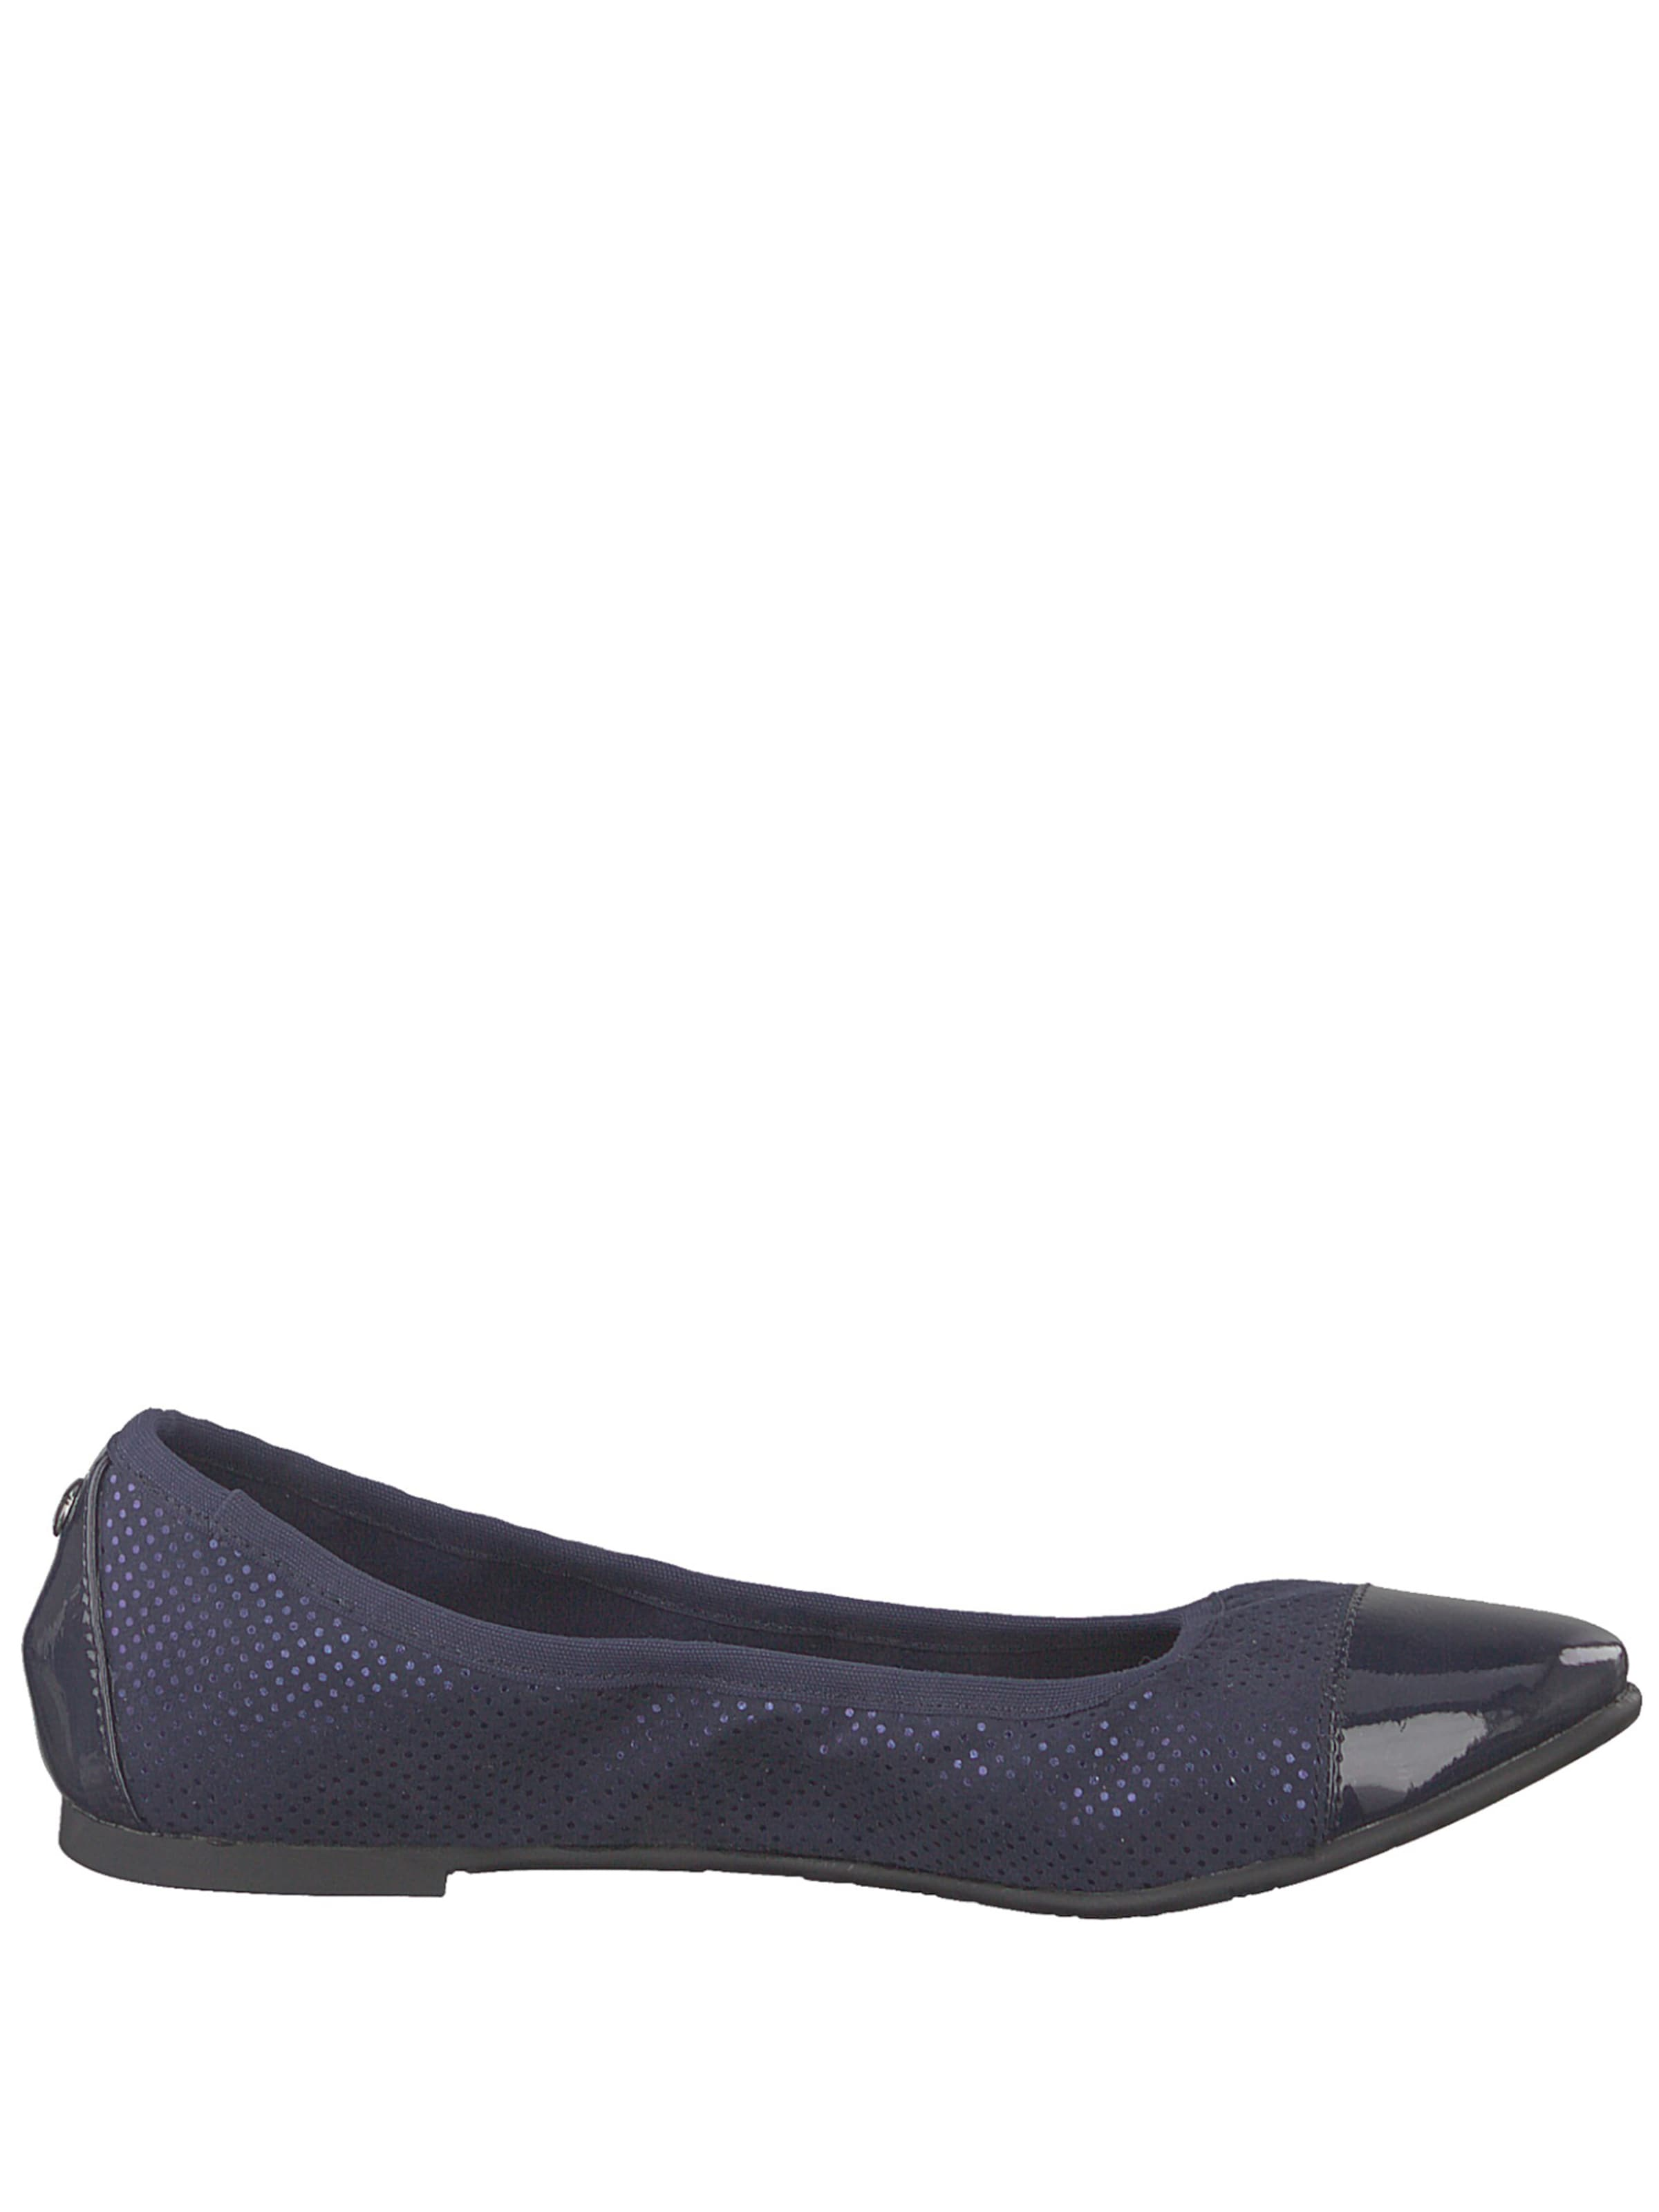 Ballerina Label Navy In S oliver Red WE9DI2YH